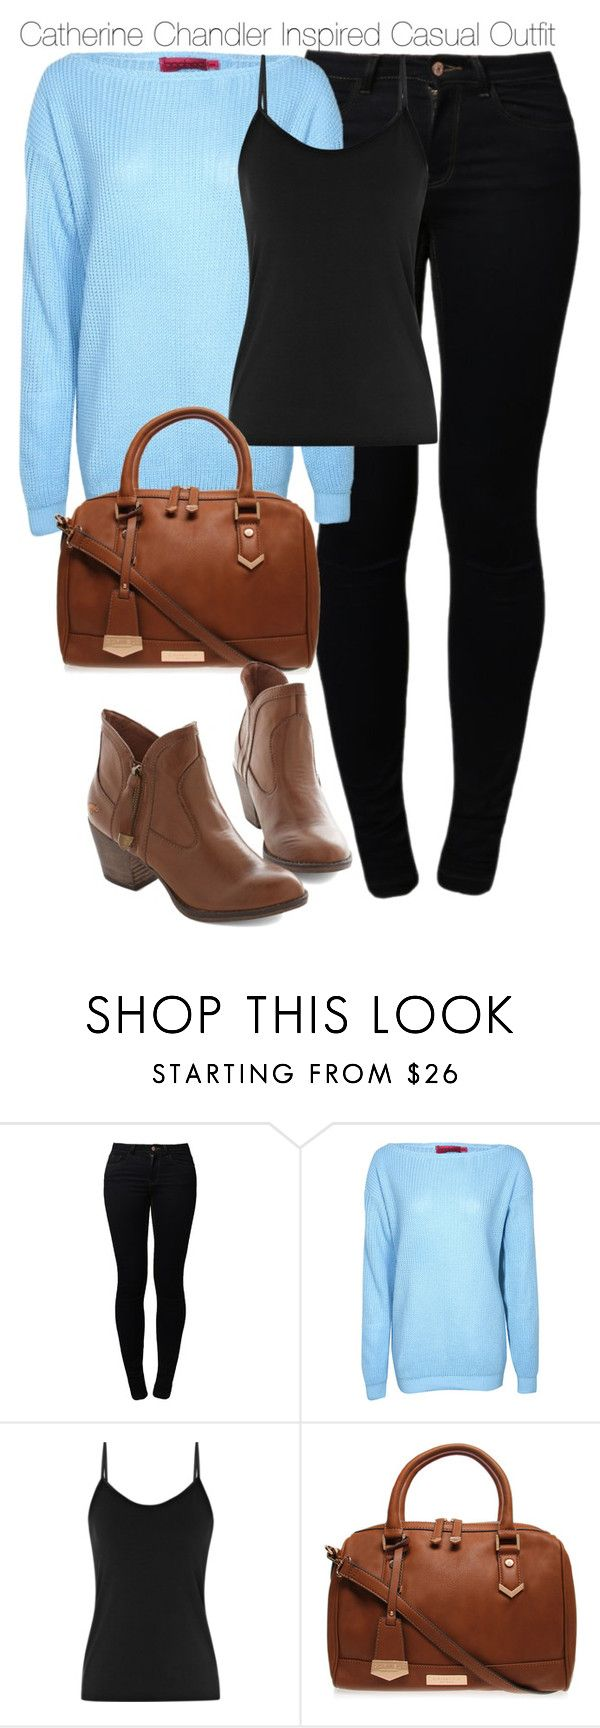 """Beauty & the Beast - Catherine Chandler Inspired Casual Outfit"" by staystronng ❤ liked on Polyvore featuring Noisy May, Boohoo, Reiss, Carvela Kurt Geiger, Inspired, INSPIRE, BeautyandtheBeast, BATB and catchandler"